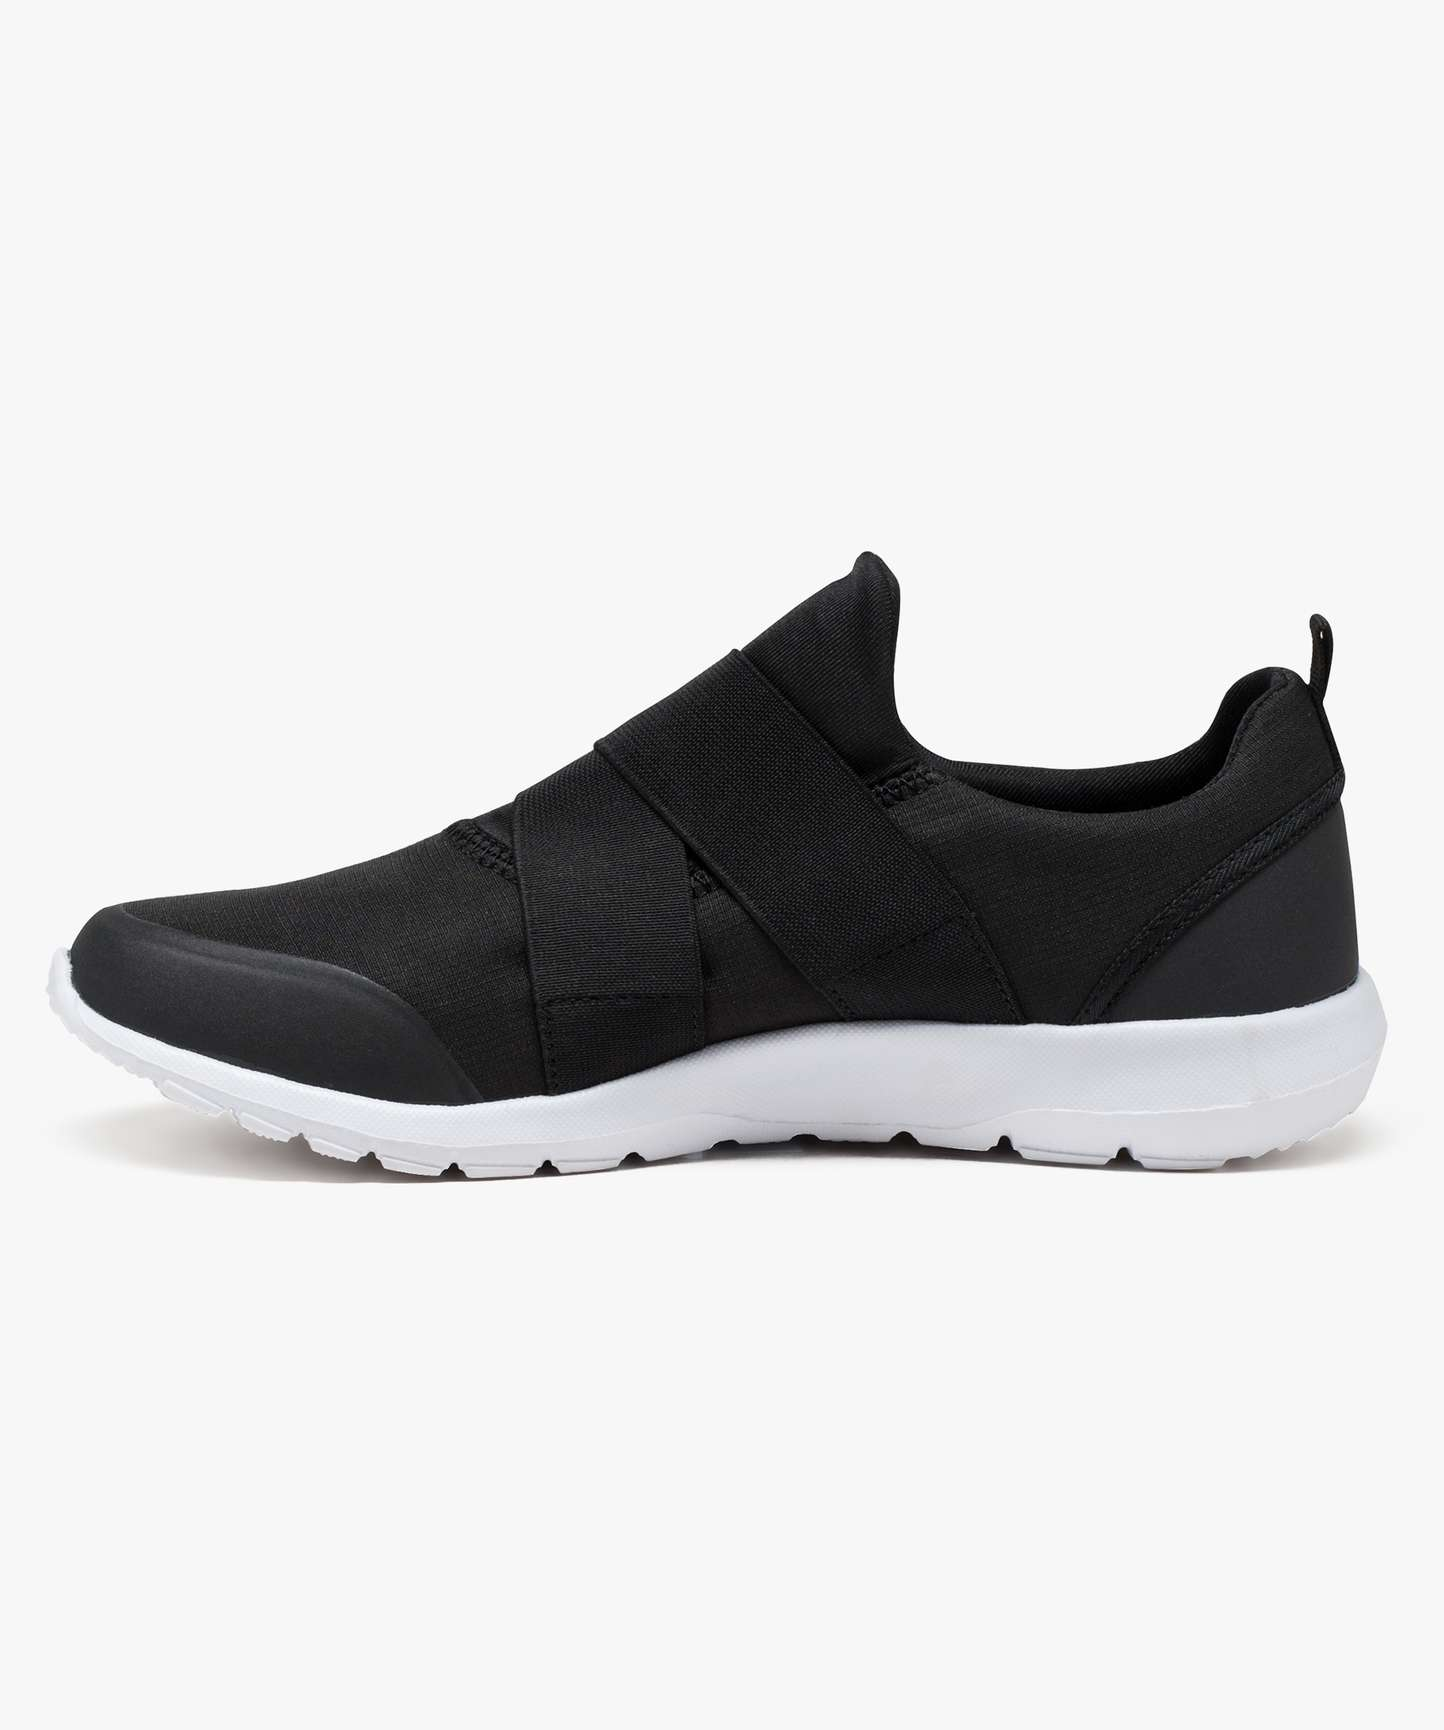 Mal católico Anguila  Want to buy > nike sans lacet femme, Up to 79% OFF